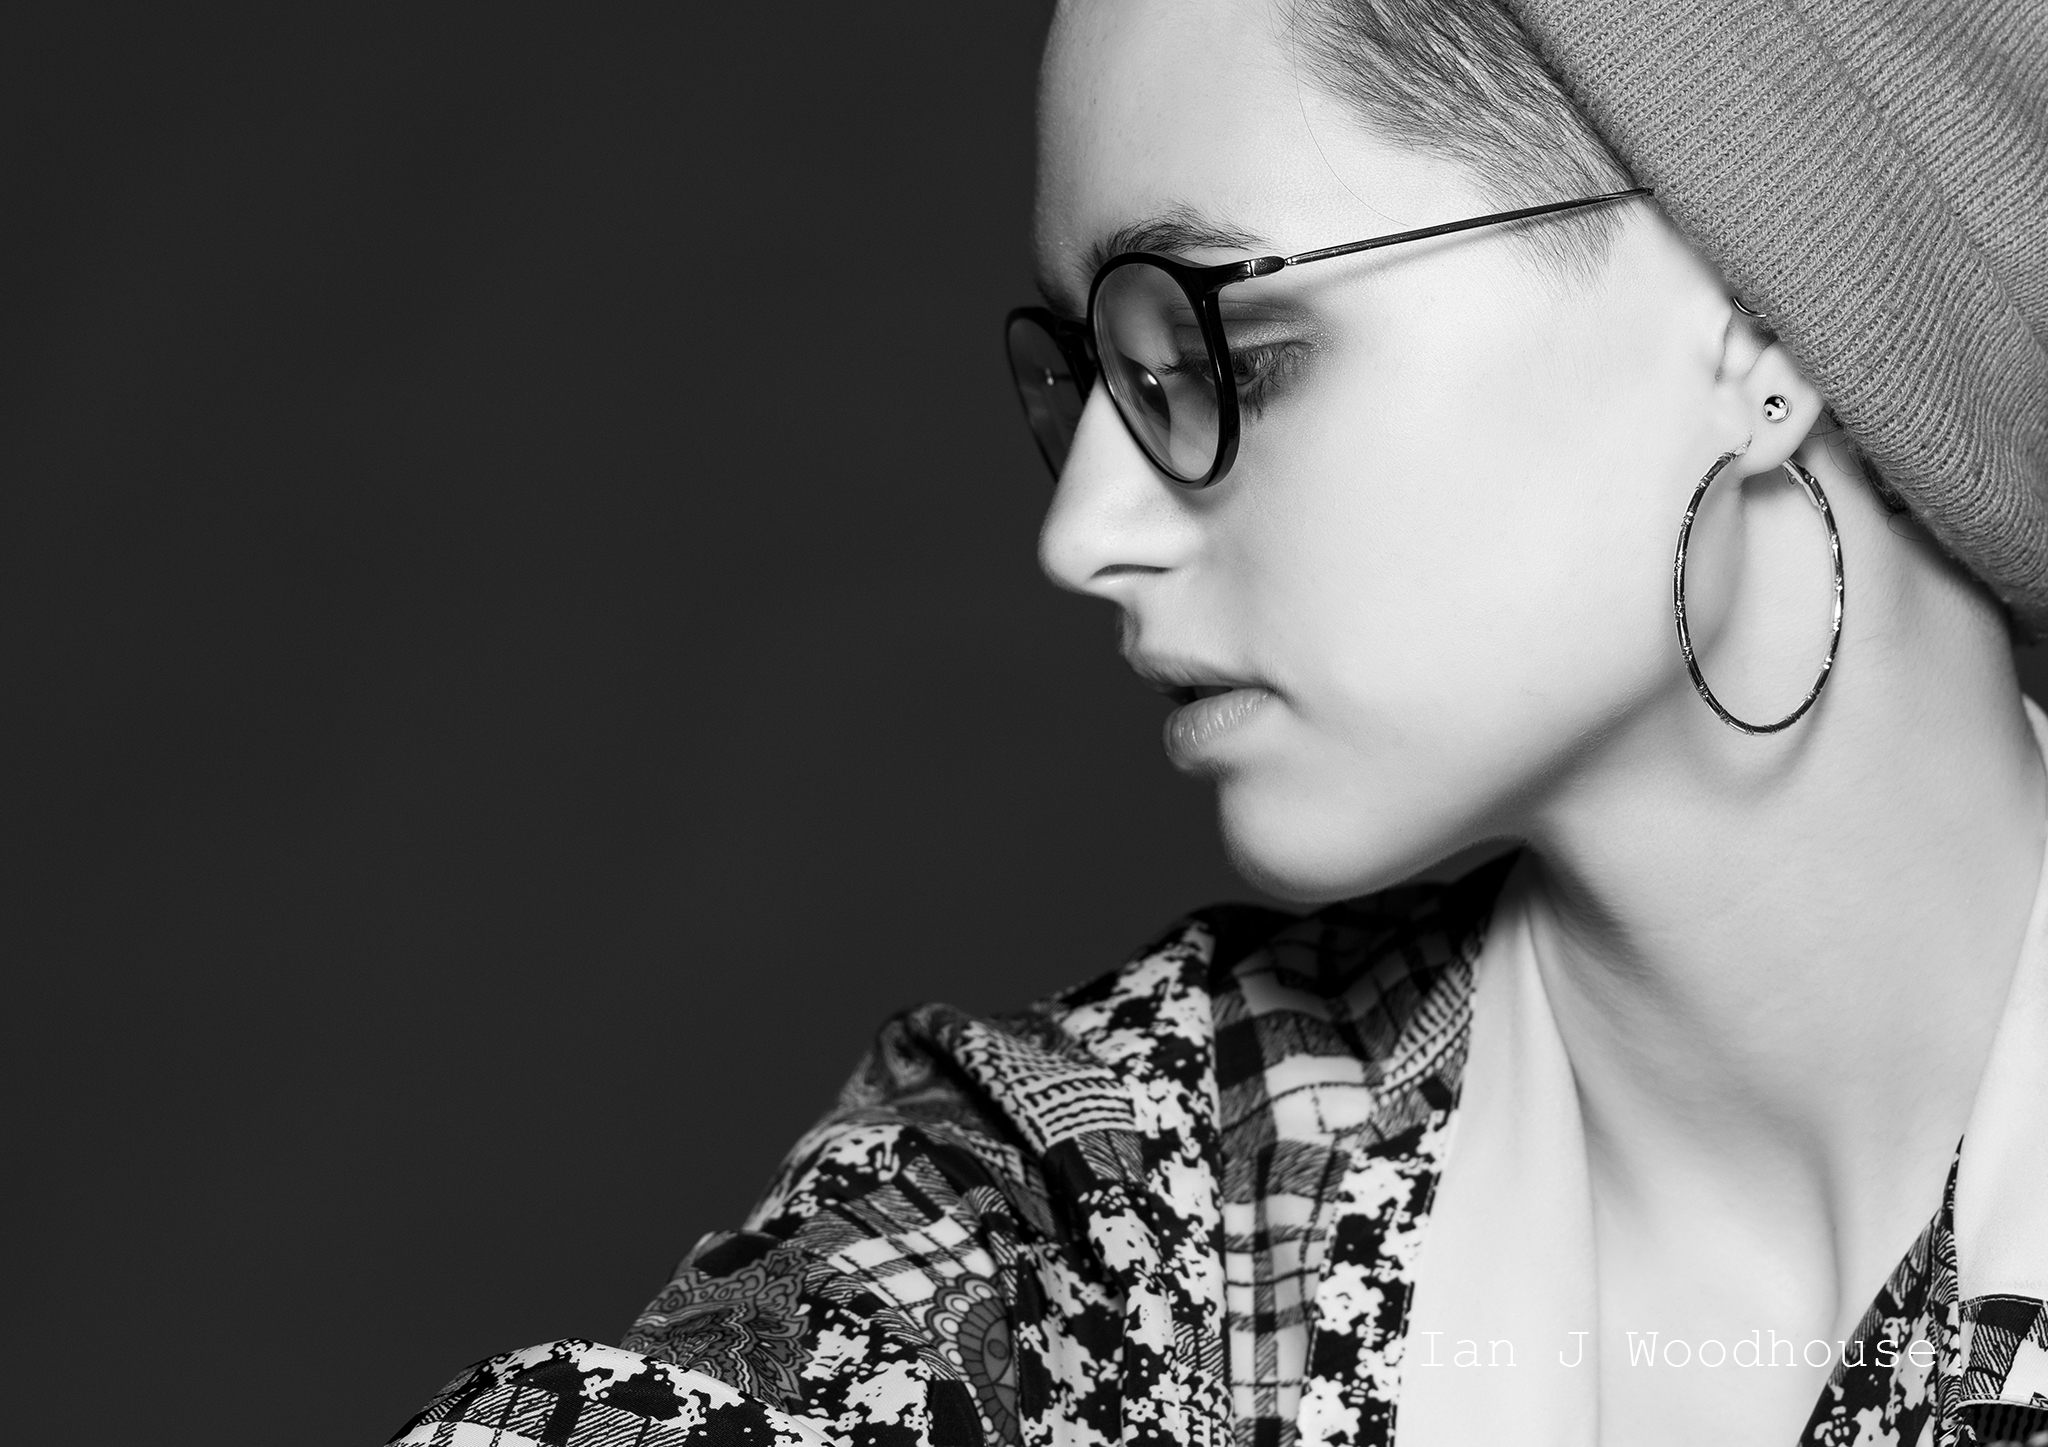 Side profile shot of a model wearing glasses and a beanie hat